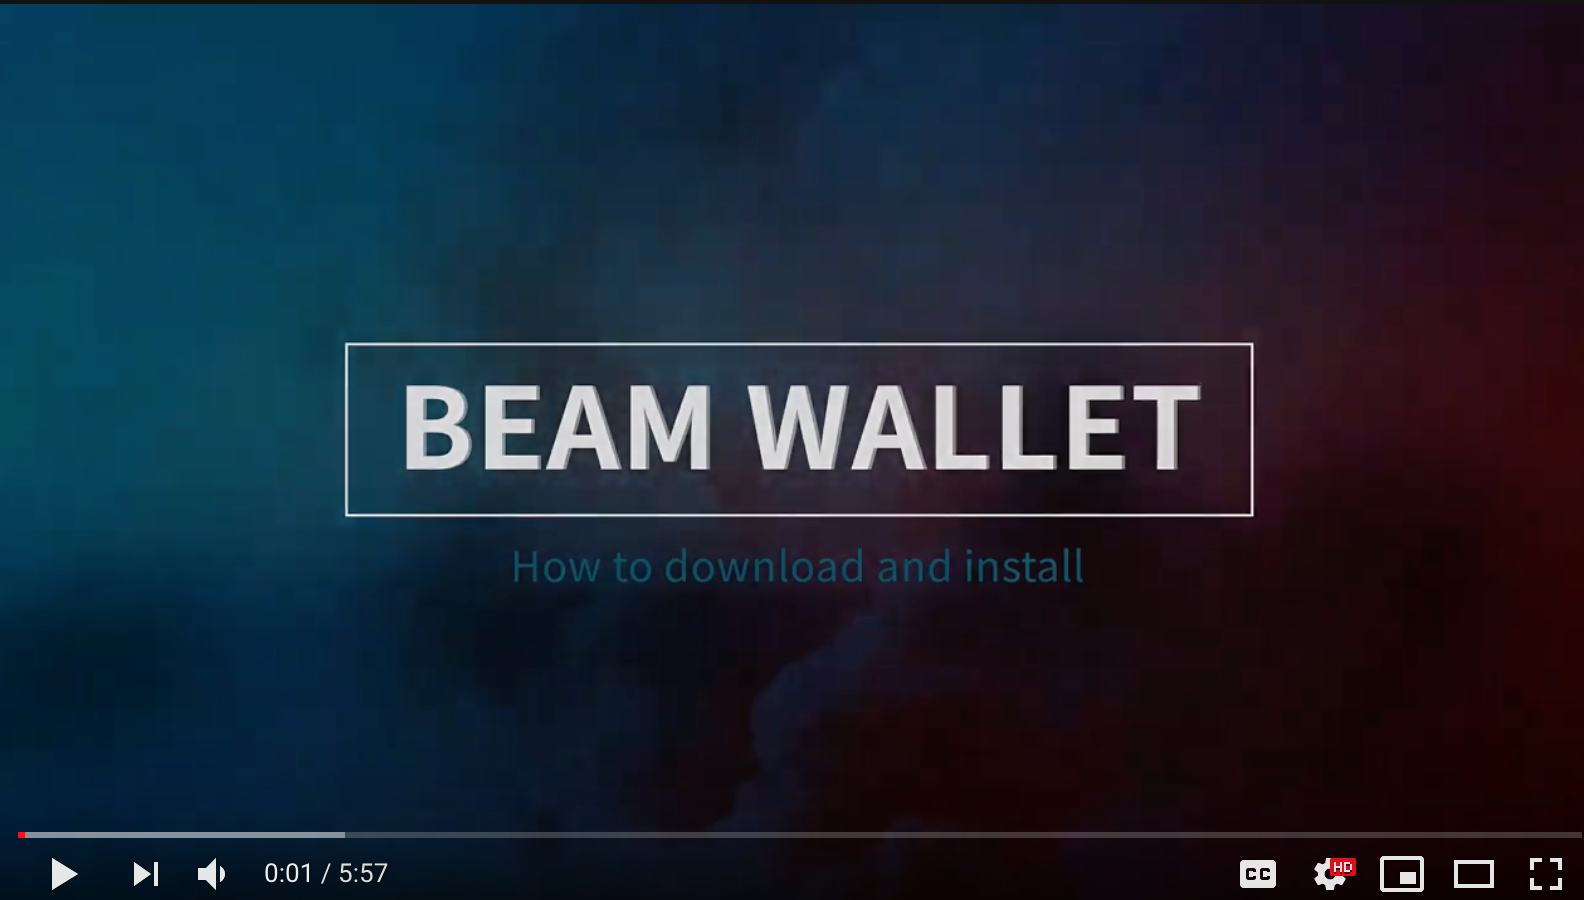 BEAM wallet download and installation guide